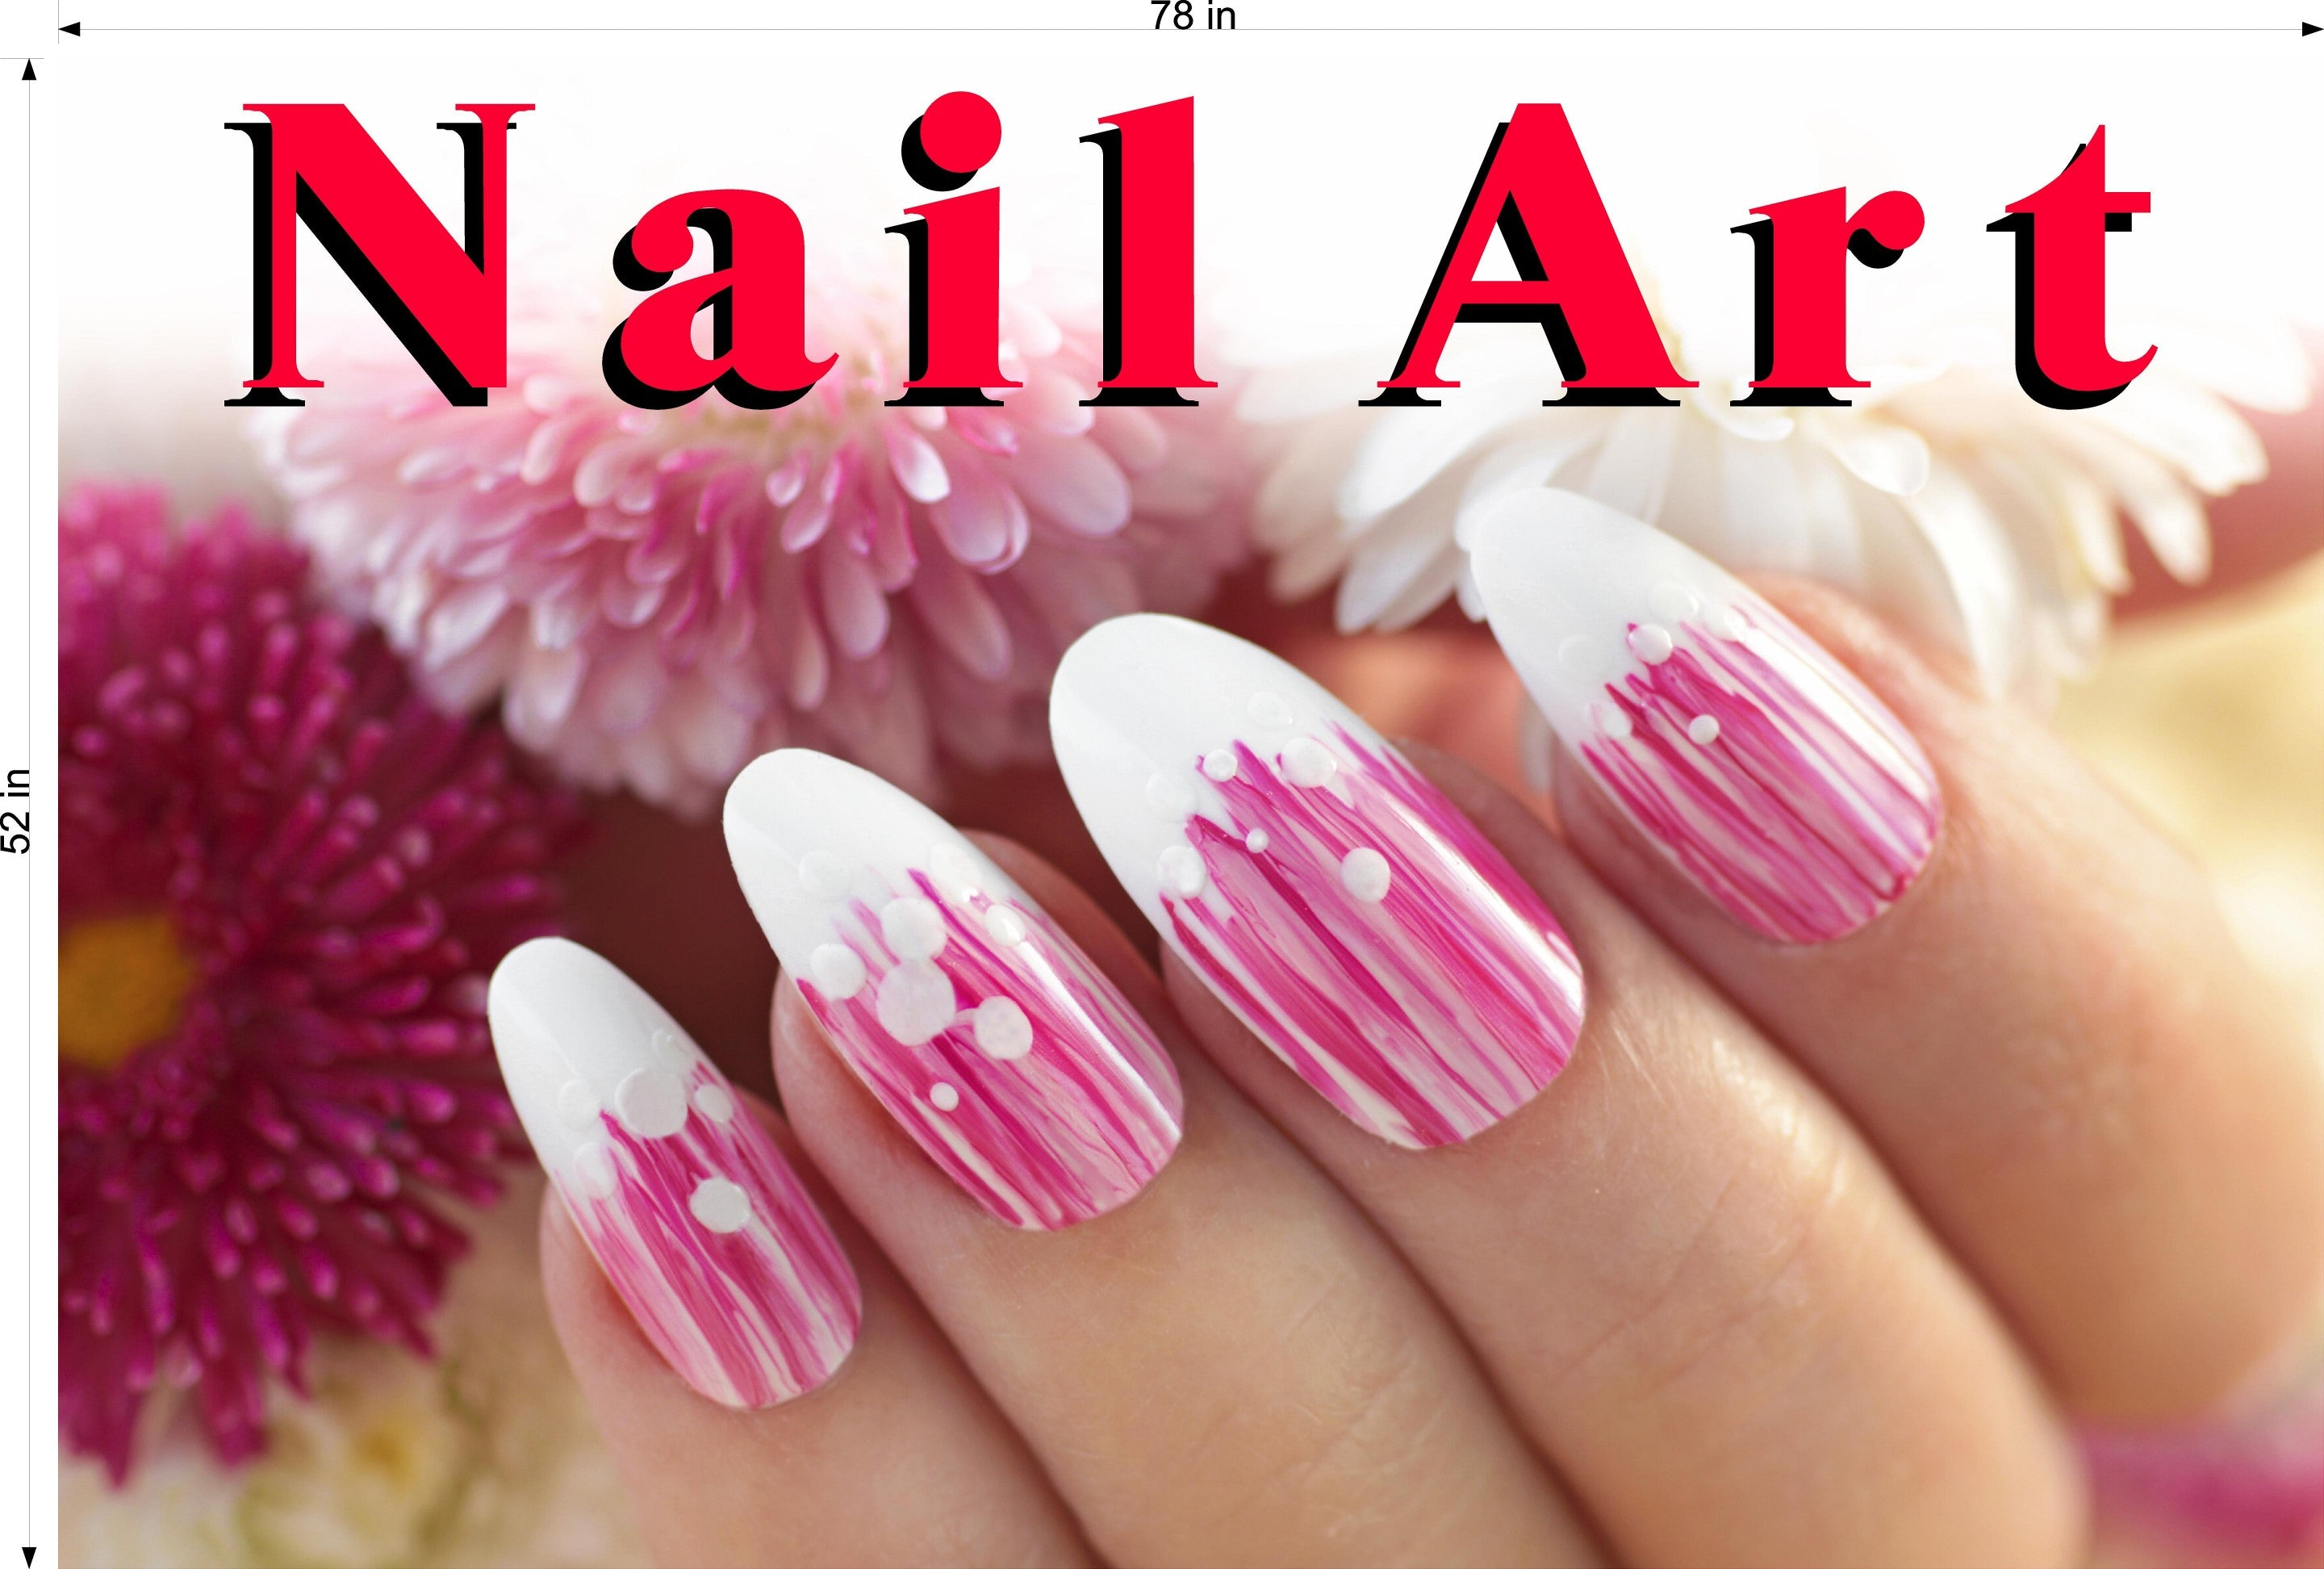 Nail Art 10 Photo-Realistic Paper Poster Premium Matte Interior Inside Sign Advertising Marketing Wall Window Non-Laminated Horizontal